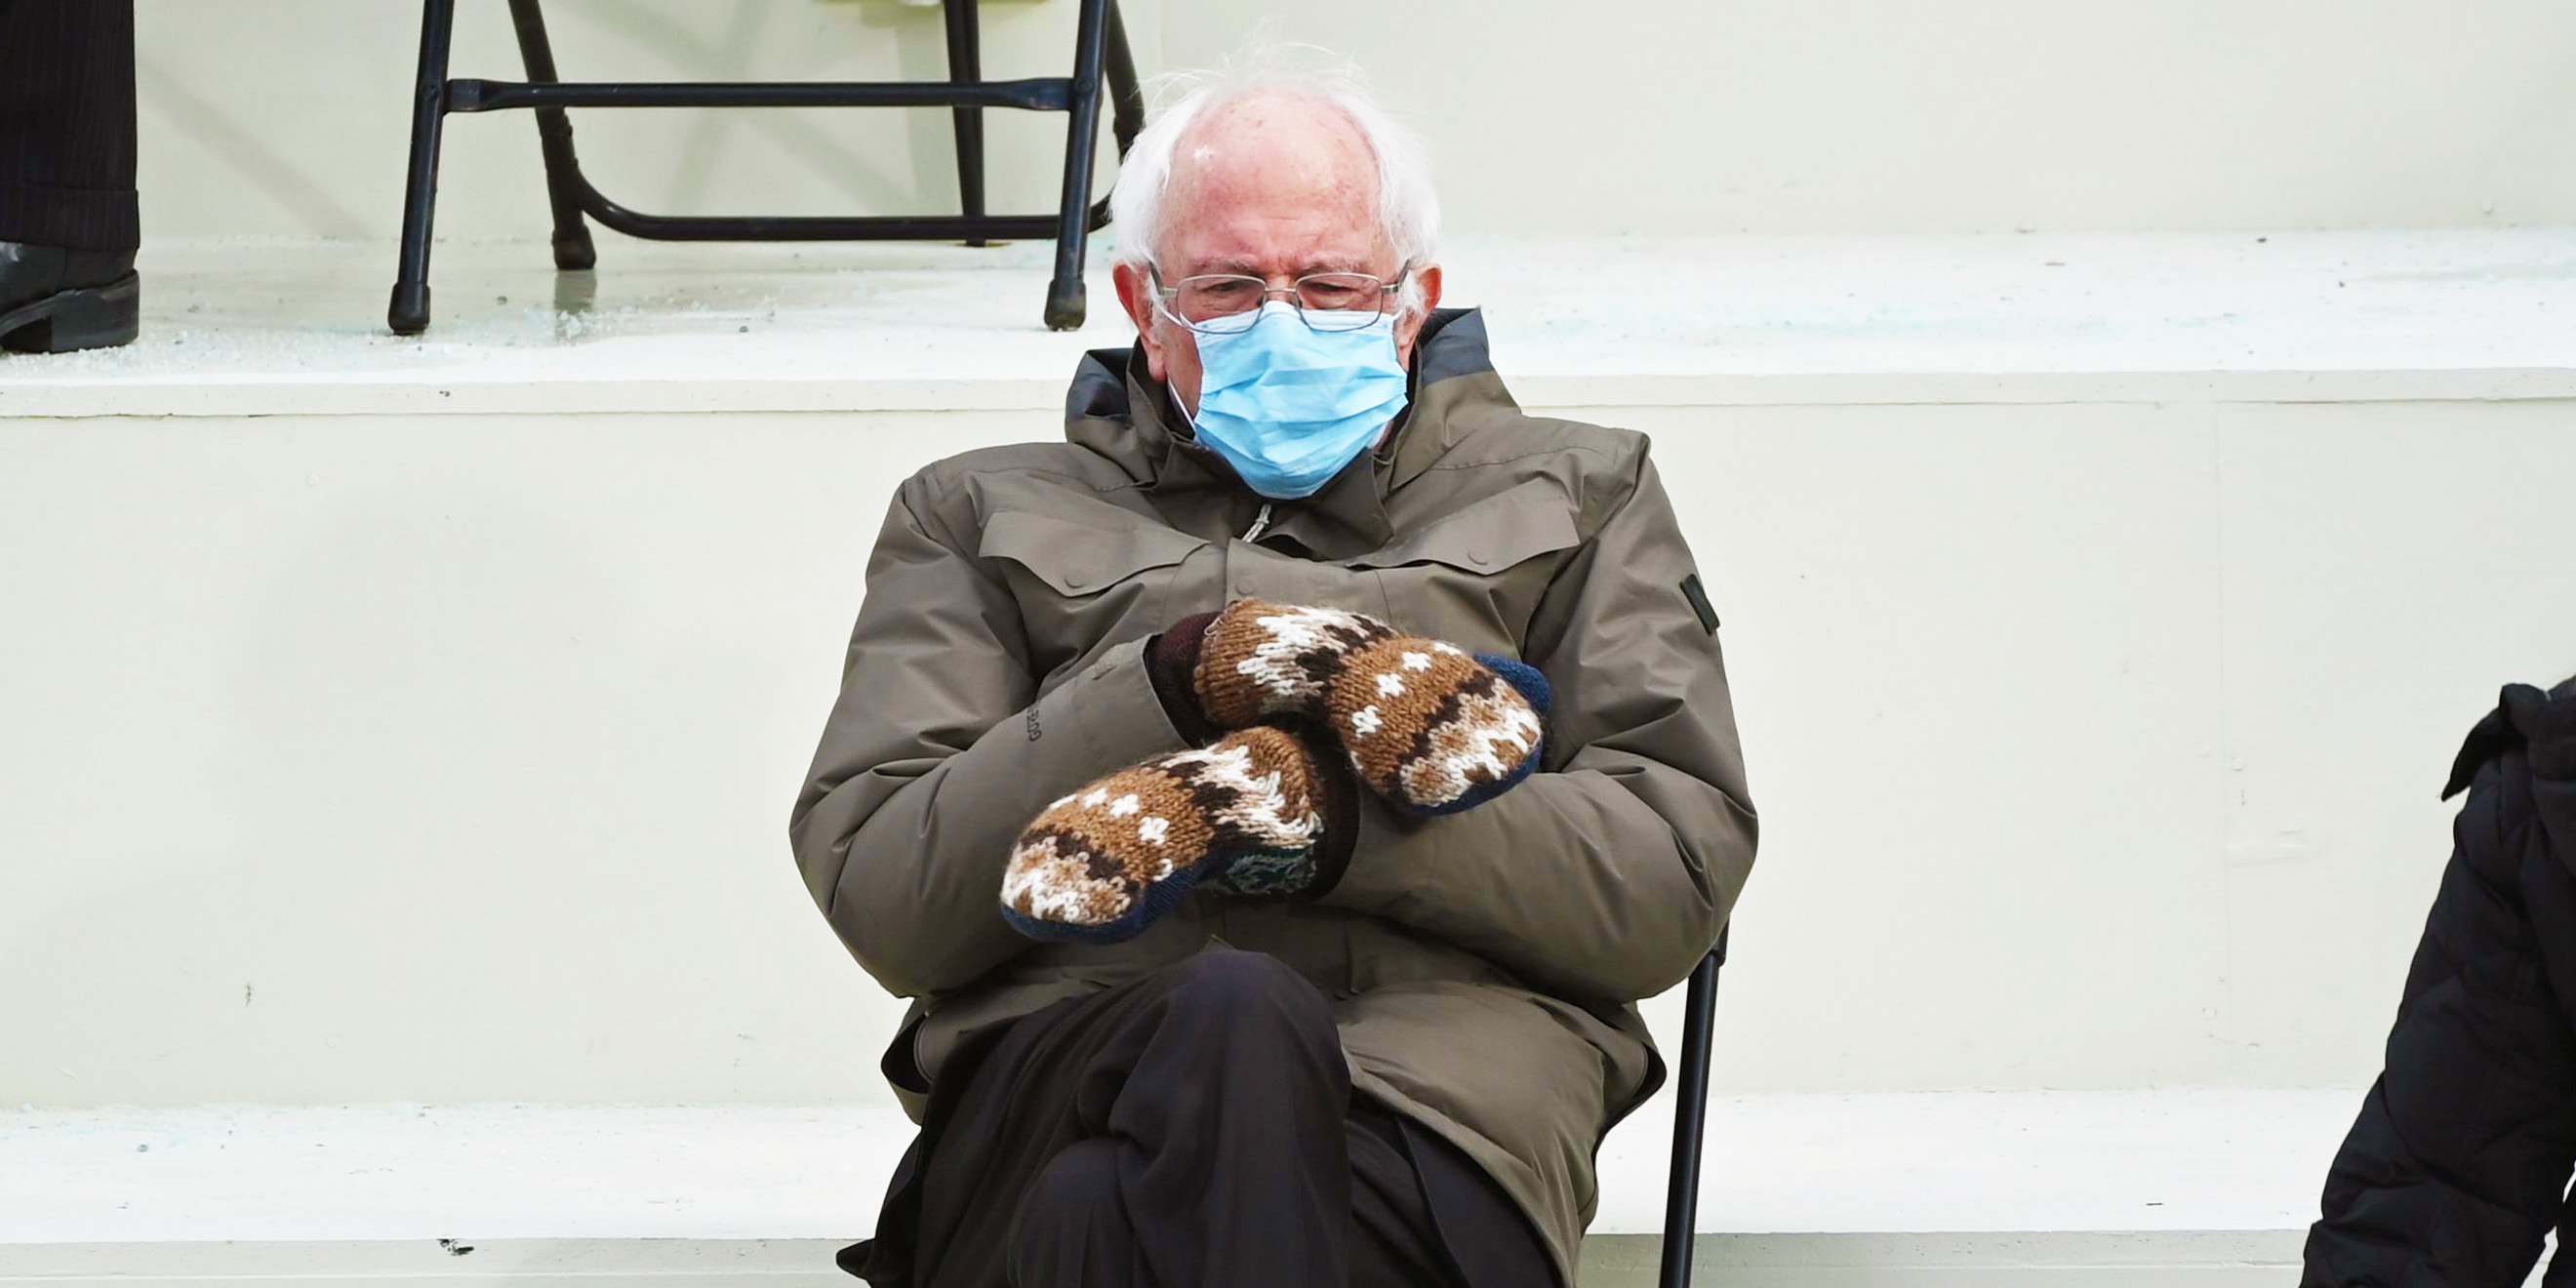 press office and digital PR support - we pitched patterns so people could make their own Bernie Sanders' mittens